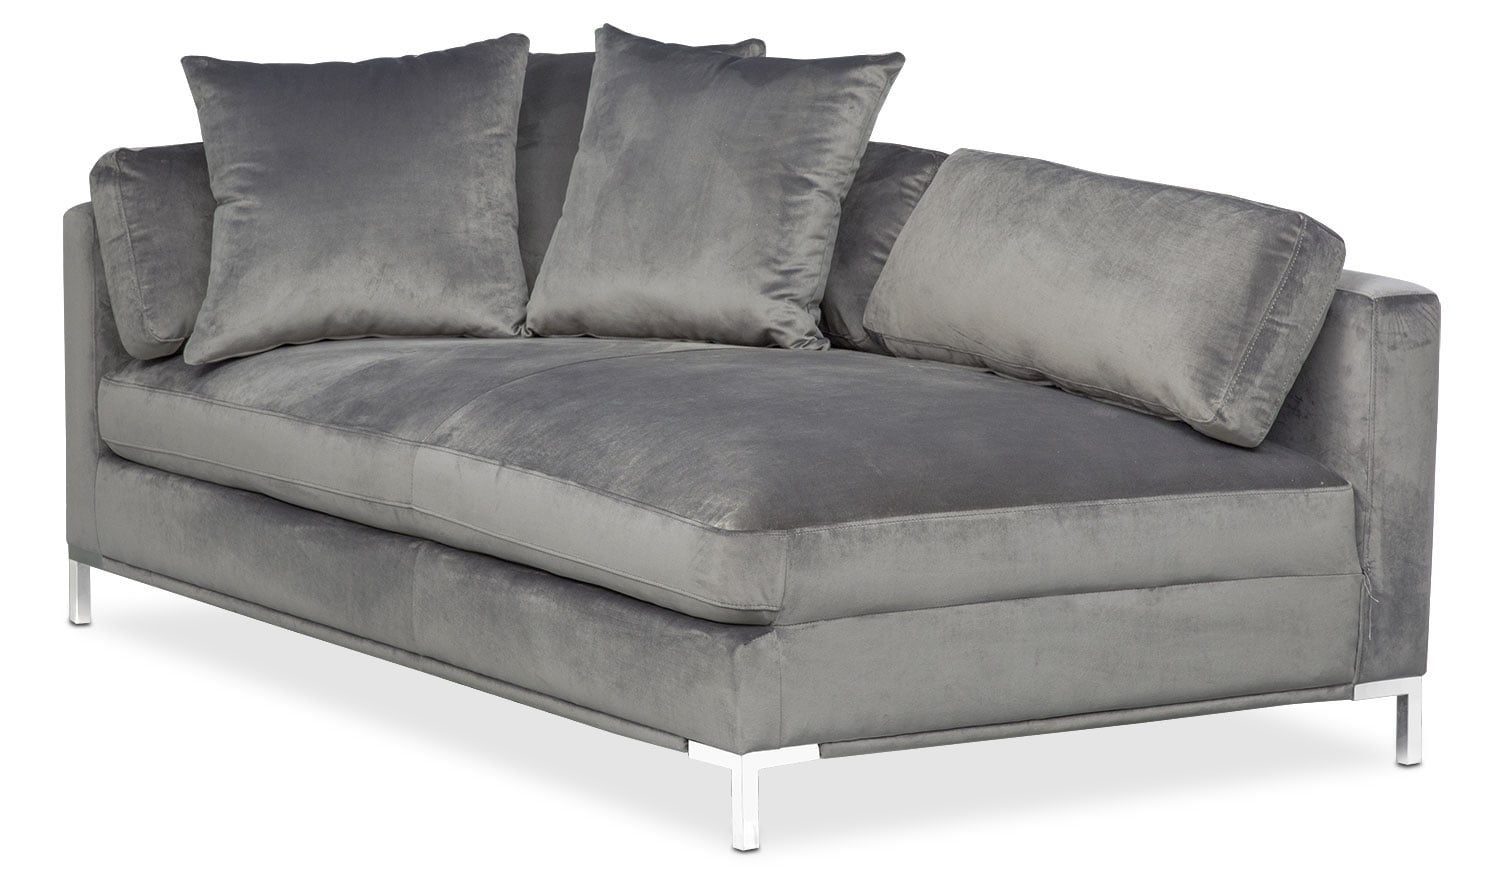 sleeper sofas chicago il sofa clearance store london value city furniture northlake 60164 moda left facing chaise gray